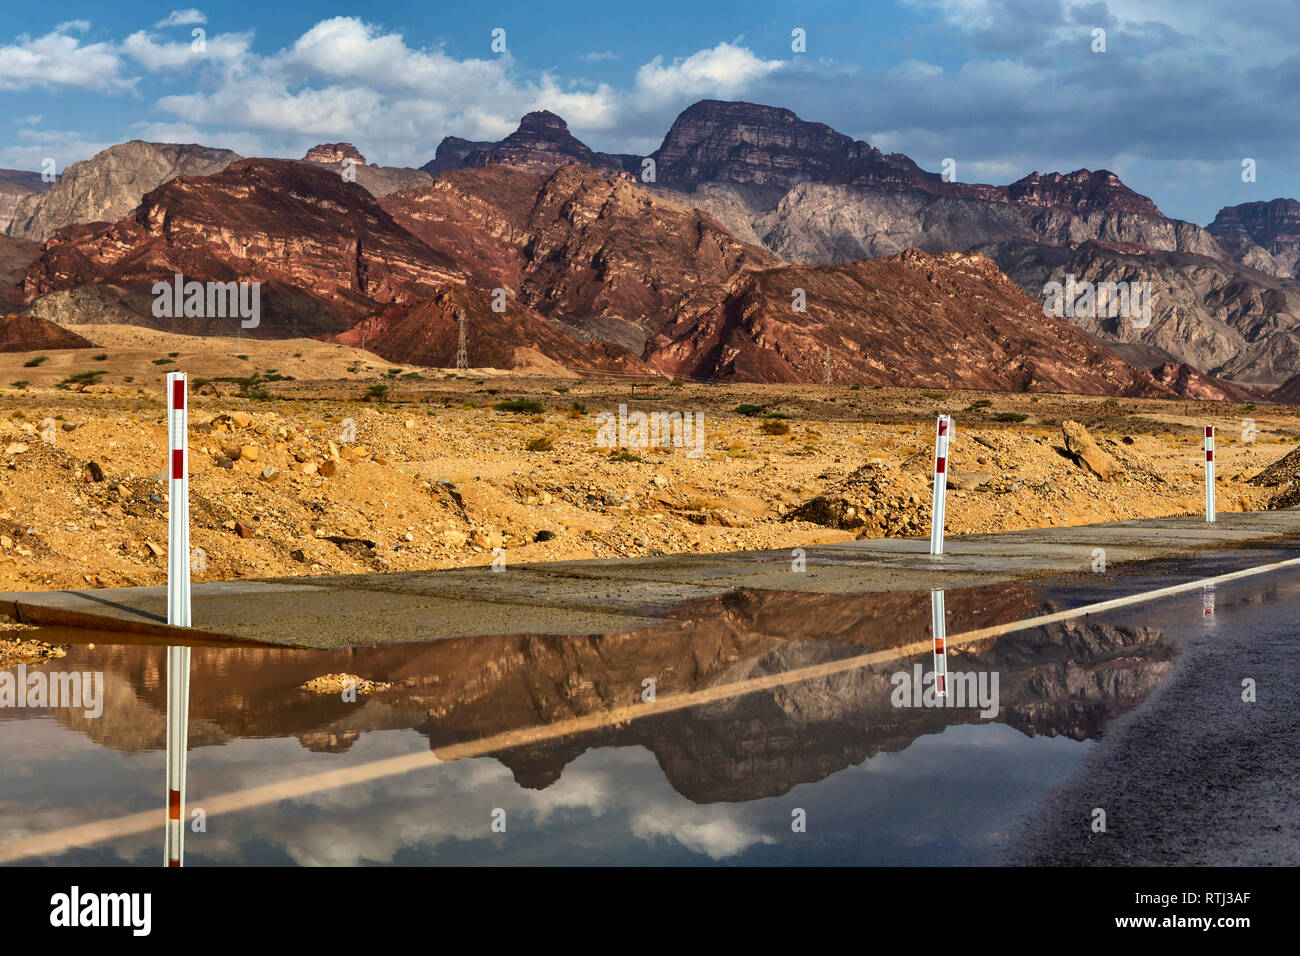 Road from Nuweiba to Taba, Sinai peninsula, Egypt - Stock Image